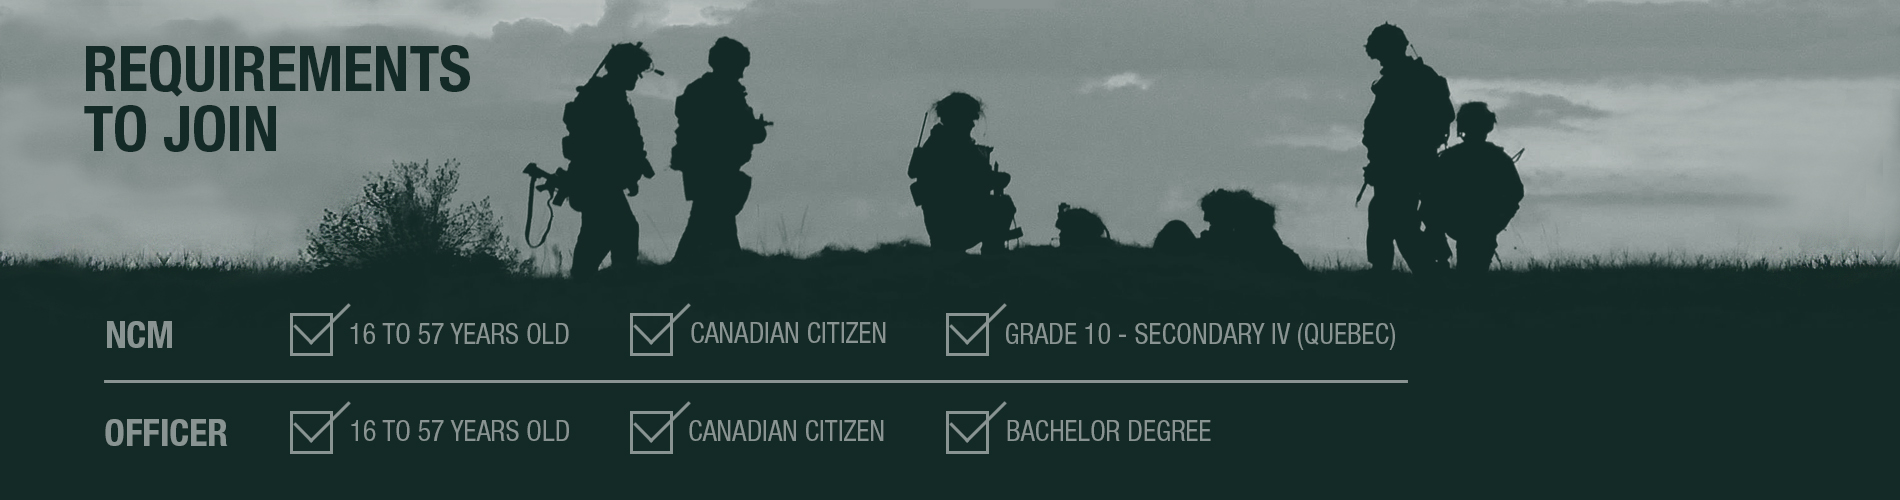 Requirements to join the Canadian Armed Forces infographic